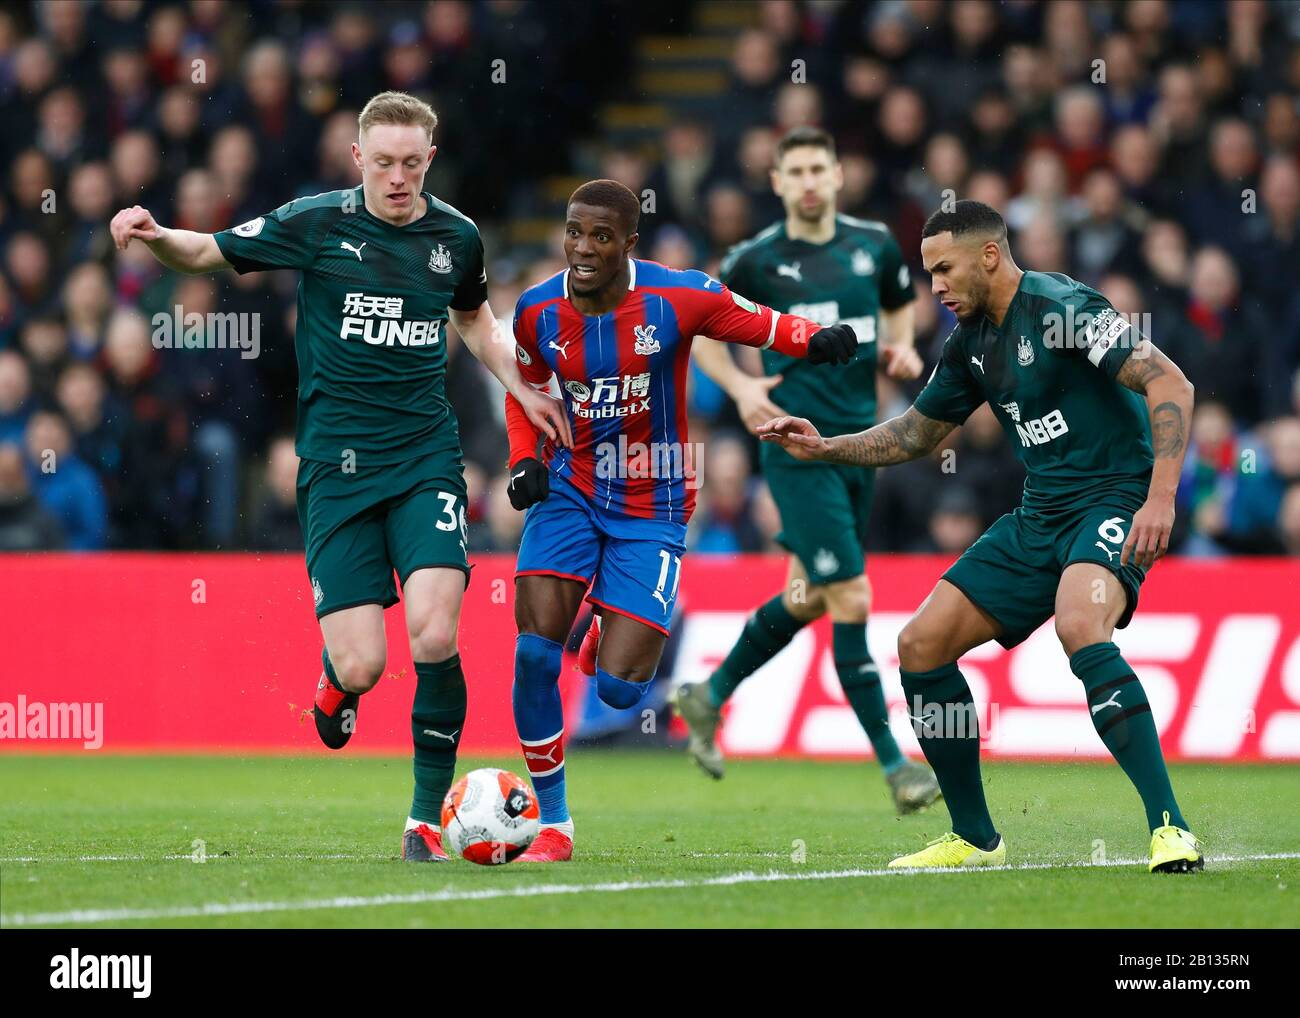 Selhurst Park, London, UK. 22nd Feb, 2020. English Premier League Football, Crystal Palace versus Newcastle United; Wilfried Zaha of Crystal Palace being challenged by Sean Longstaff and Jamaal Lascelles of Newcastle United - Strictly Editorial Use Only. No use with unauthorized audio, video, data, fixture lists, club/league logos or 'live' services. Online in-match use limited to 120 images, no video emulation. No use in betting, games or single club/league/player publications Credit: Action Plus Sports/Alamy Live News Stock Photo